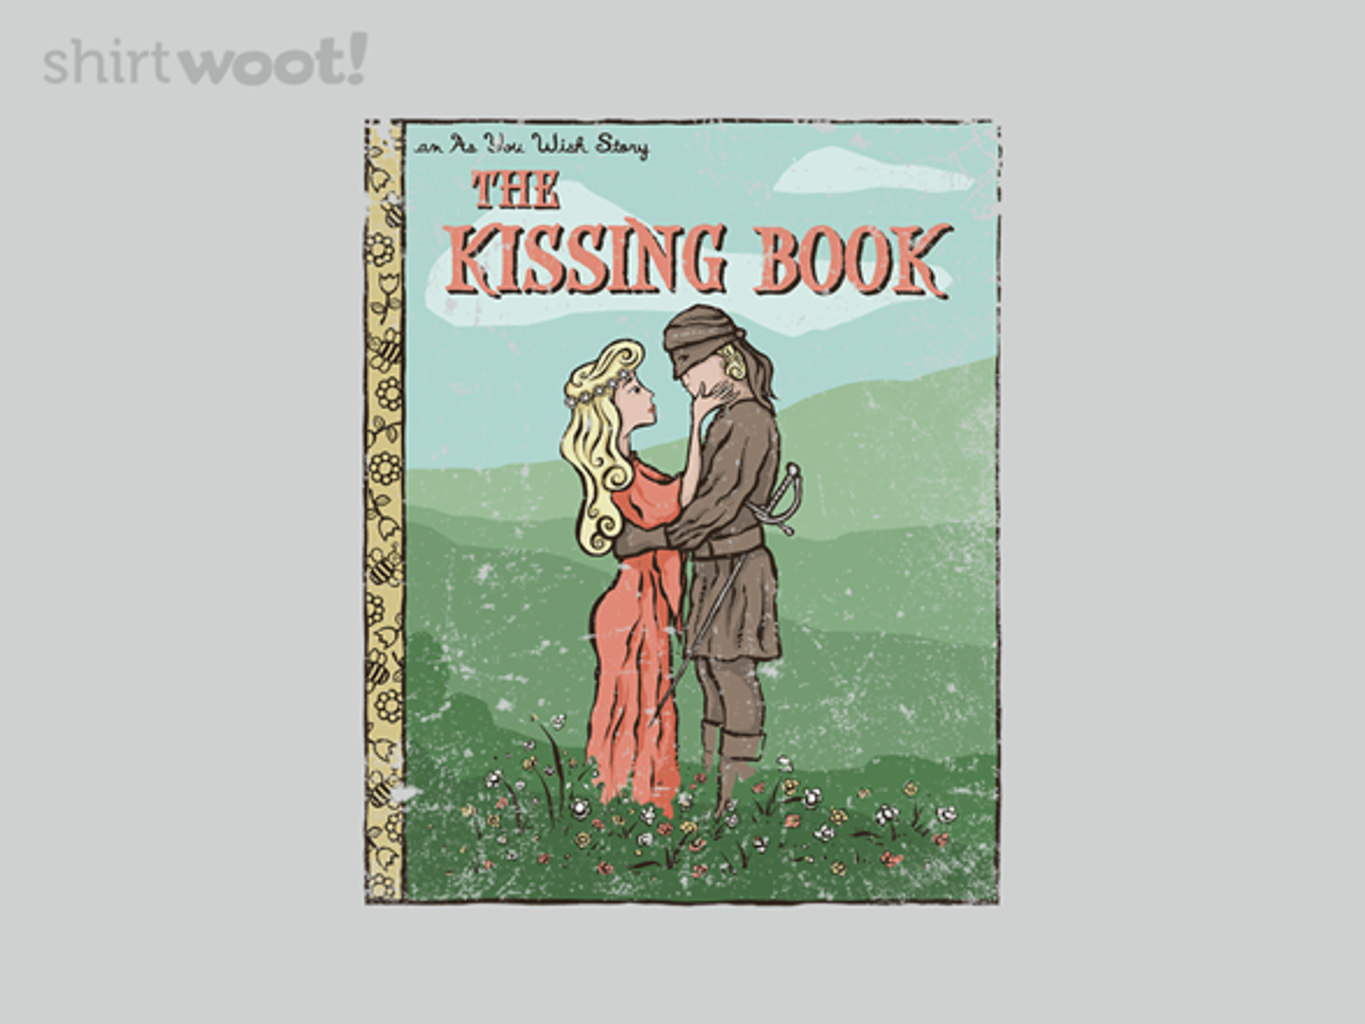 Woot!: The Kissing Book